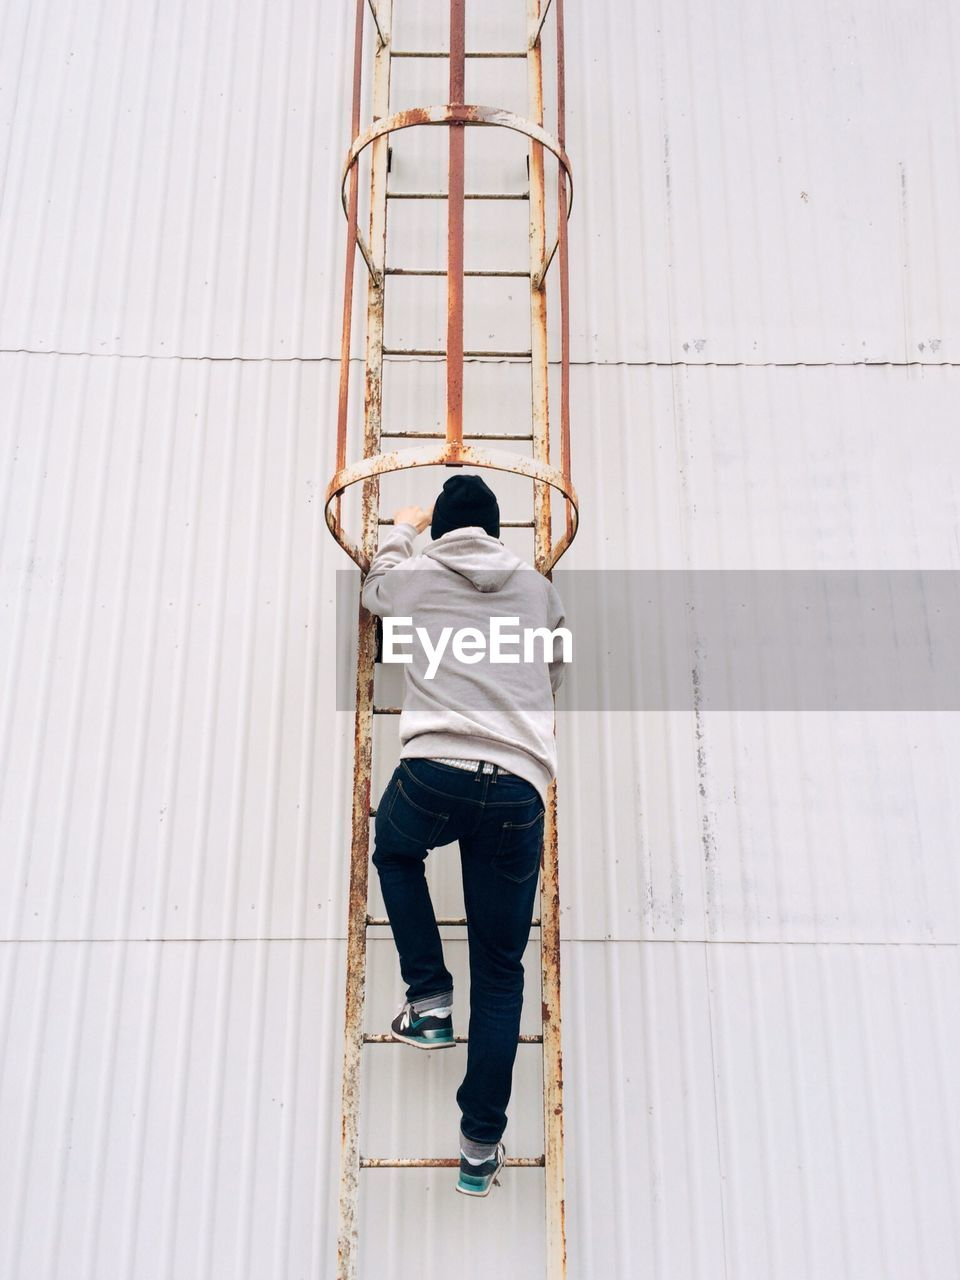 Rear view full length of man climbing on rusty ladder by white wall